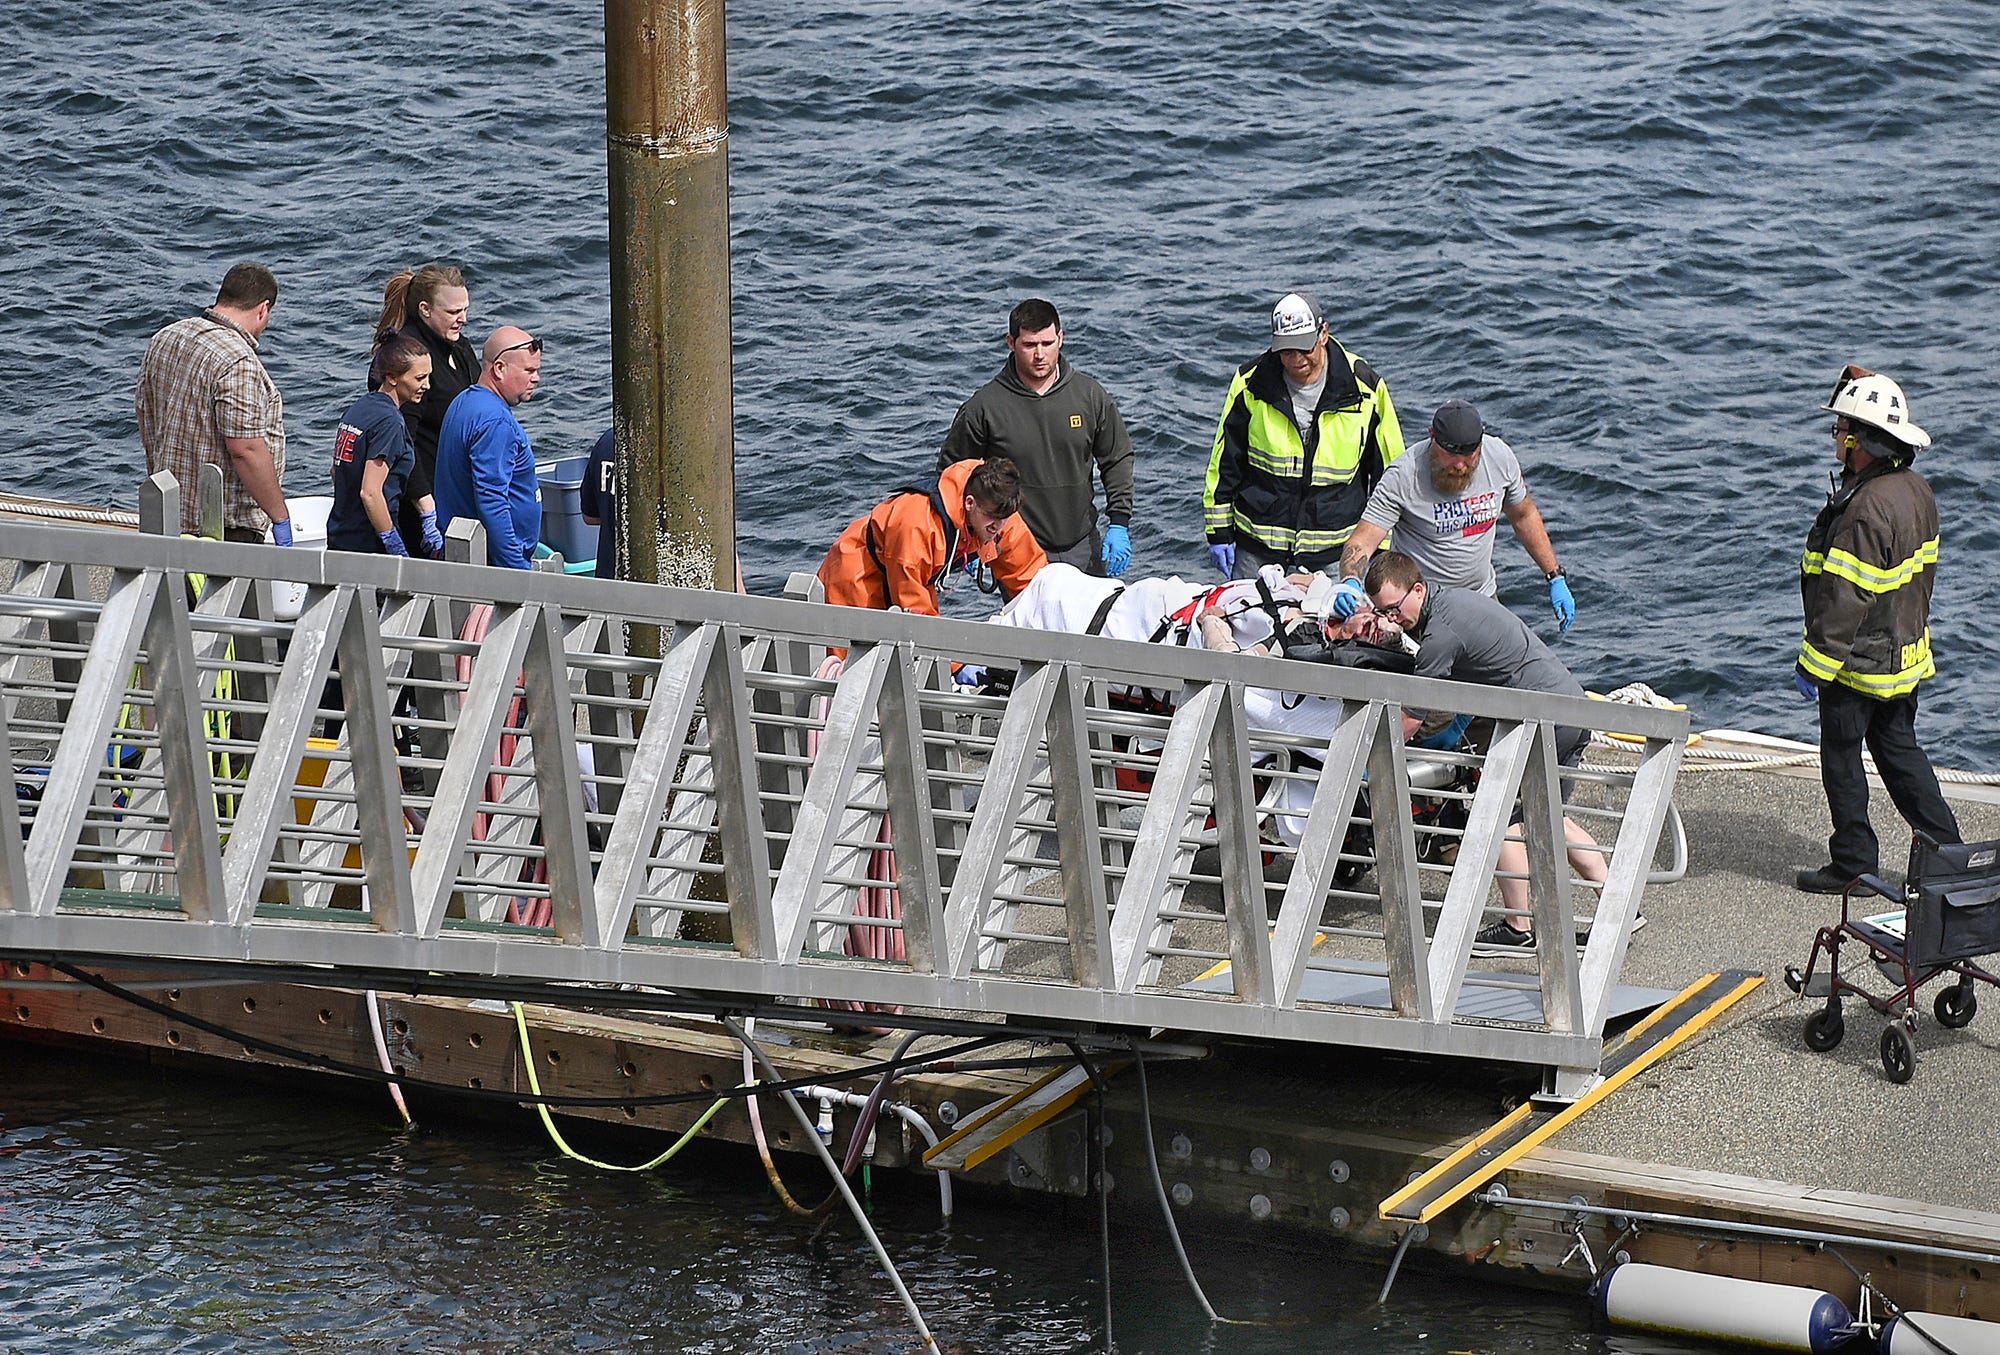 NTSB to investigate collision of floatplanes near Ketchikan, Alaska; at least 4 dead, 2 missing